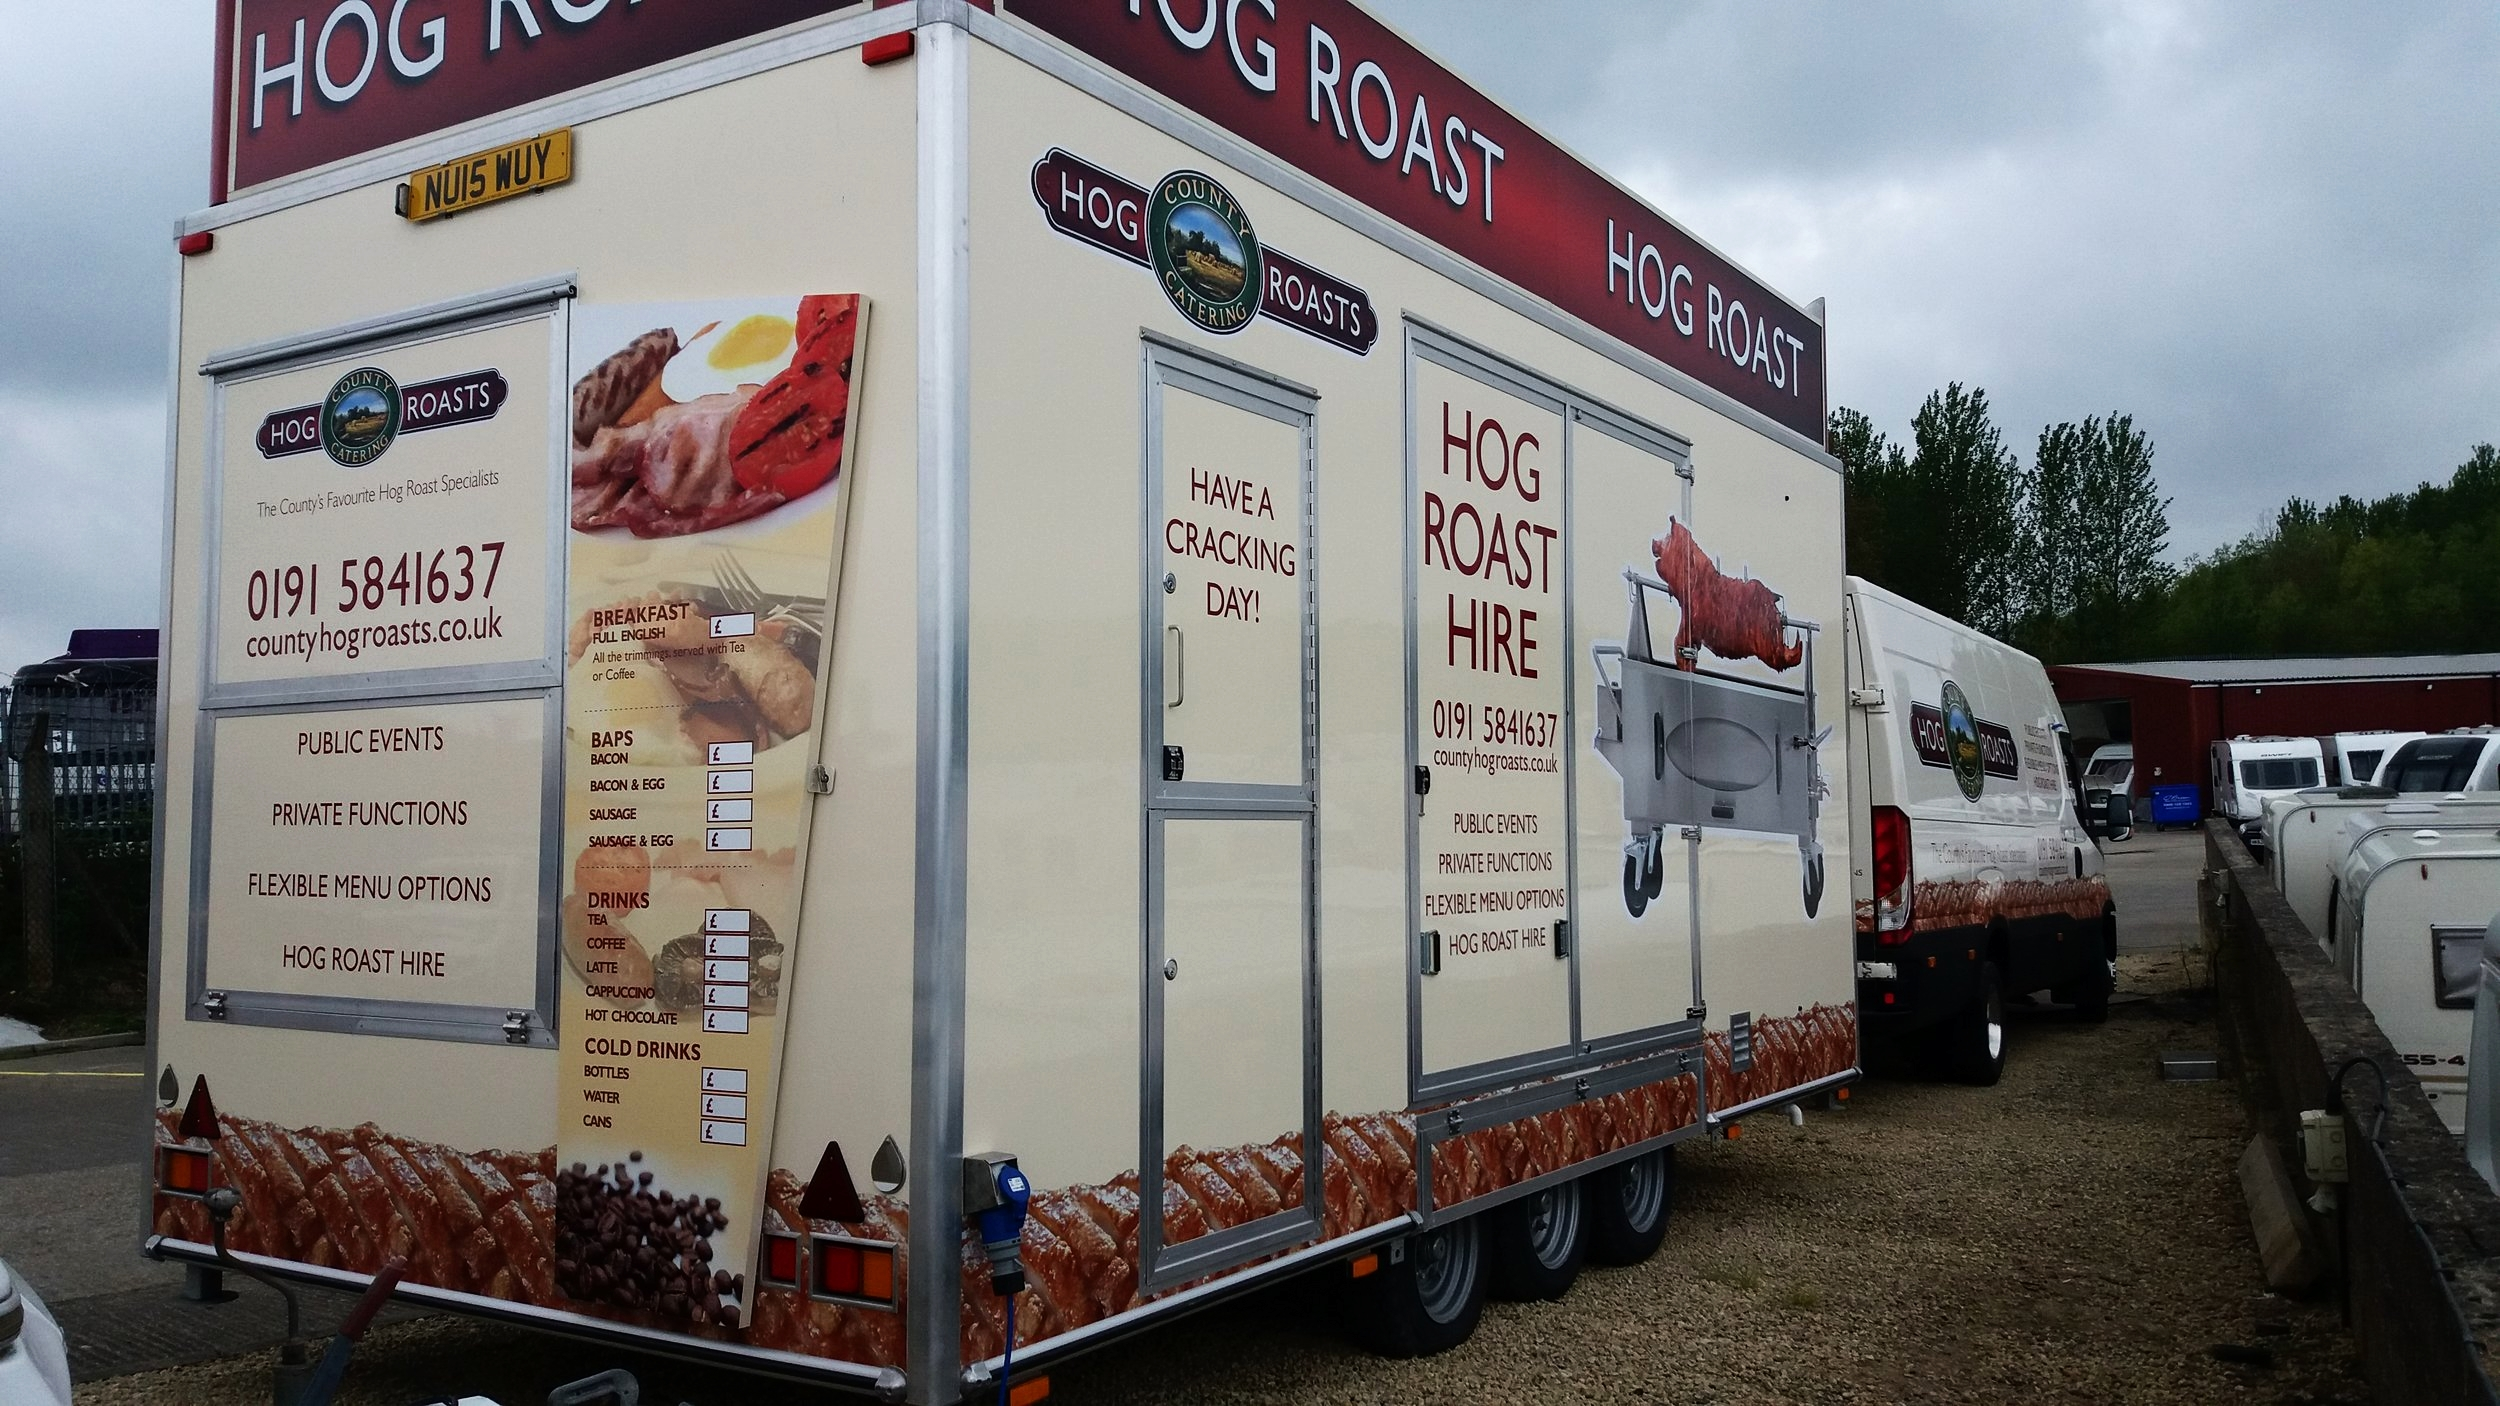 HOG ROAST CATERING TRUCK   The full wrap of catering truck for Hog Roasts Catering.